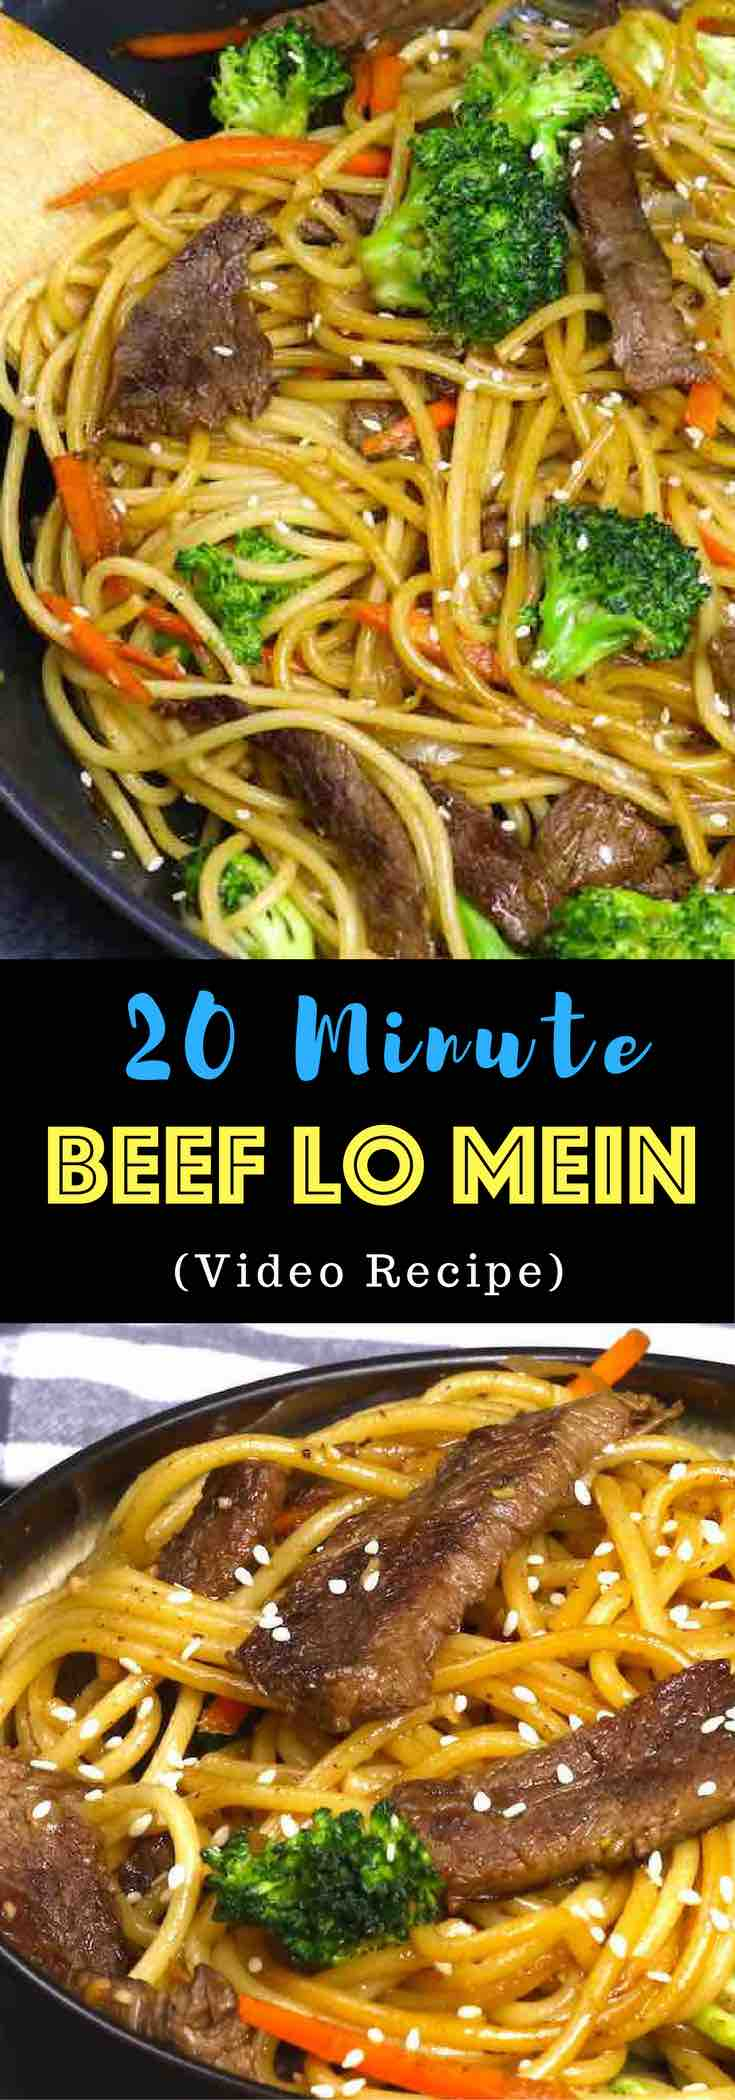 This Garlic Beef Lo Mein is a quick and easy version of classic Chinese dish. It's so much better than takeout and seriously addictive with tangy garlic and soy sauce flavors, the perfect weeknight dinner idea you can make in 20 minutes! All you need is only a few ingredients: flank steak, lo mein noodles, garlic, carrots, broccoli, sesame oil, soy sauce, hoisin sauce, ginger and brown sugar. One of the best easy Chinese dinner ideas! Quick and easy dinner recipe. Video recipe. | Tipbuzz.com